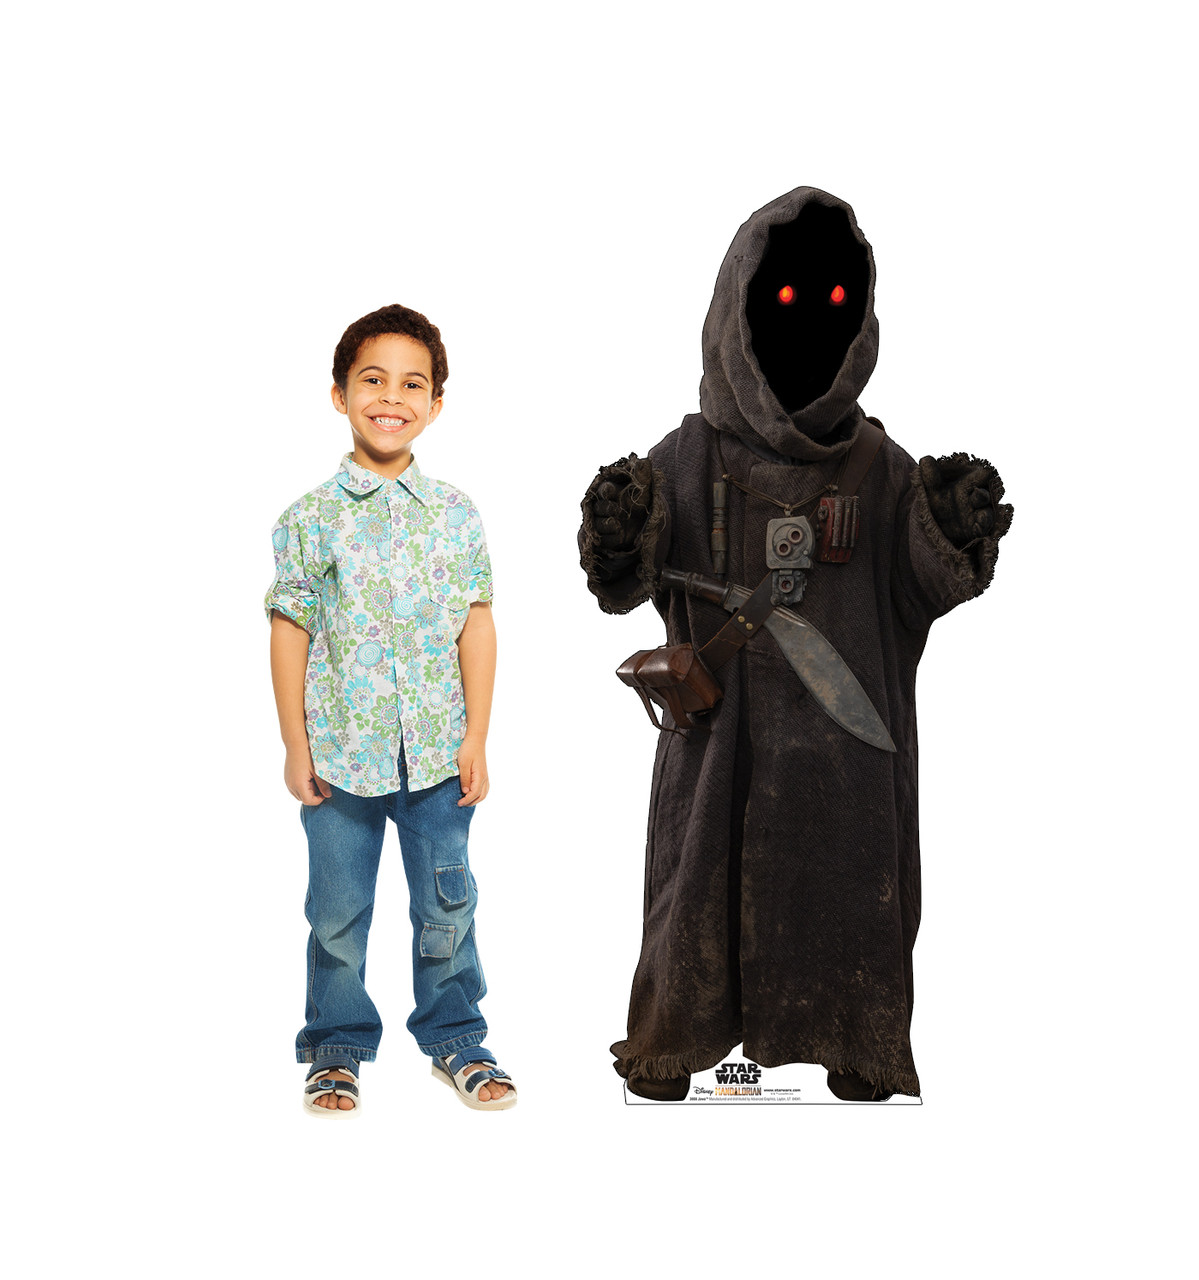 Life-size cardboard standee of Jawa from The Mandalorian with model.